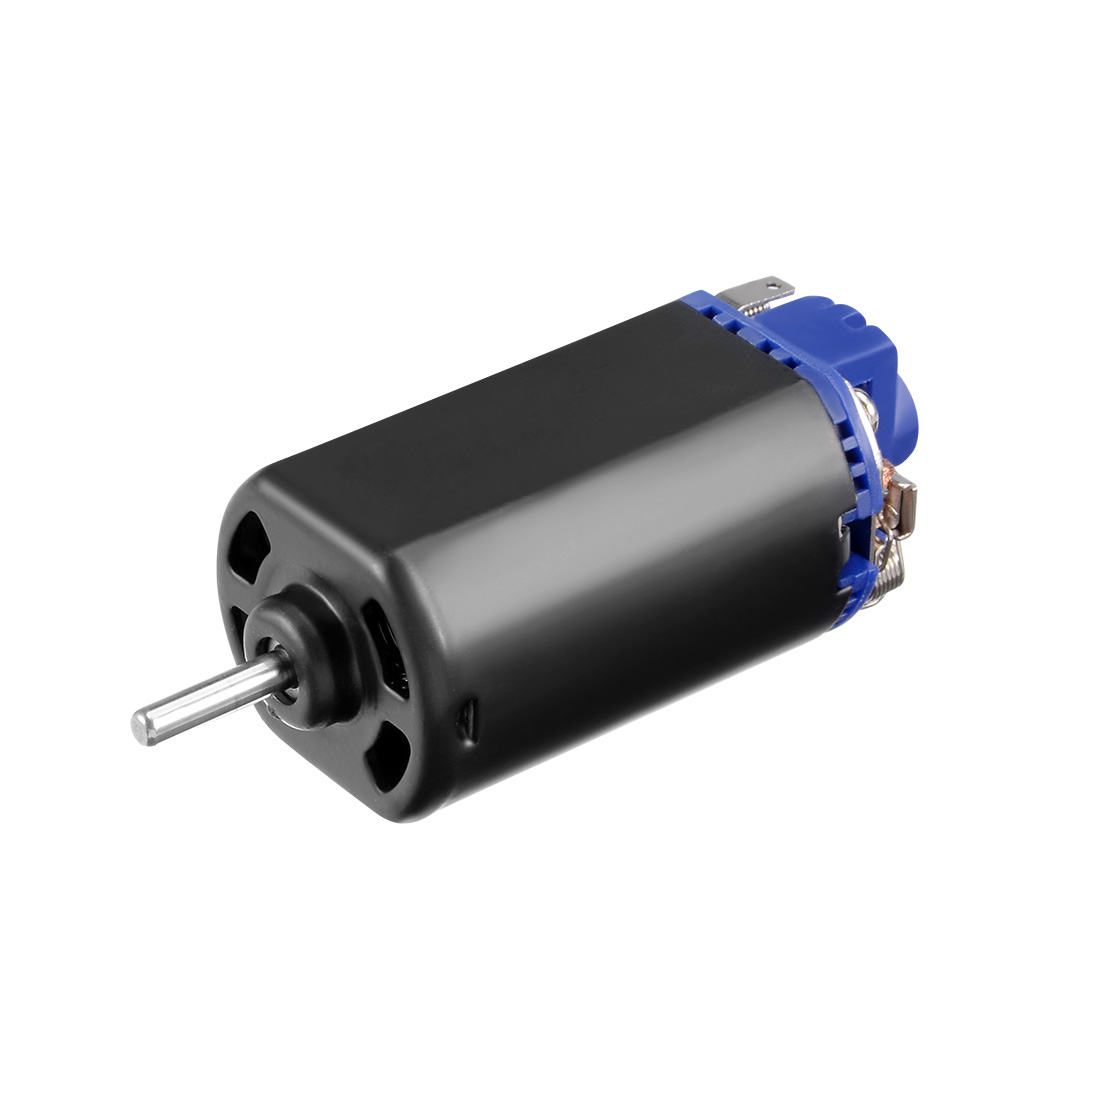 Small Motor DC 5V 11000RPM Strong Magnetic High Speed Motor for DIY Toy Car